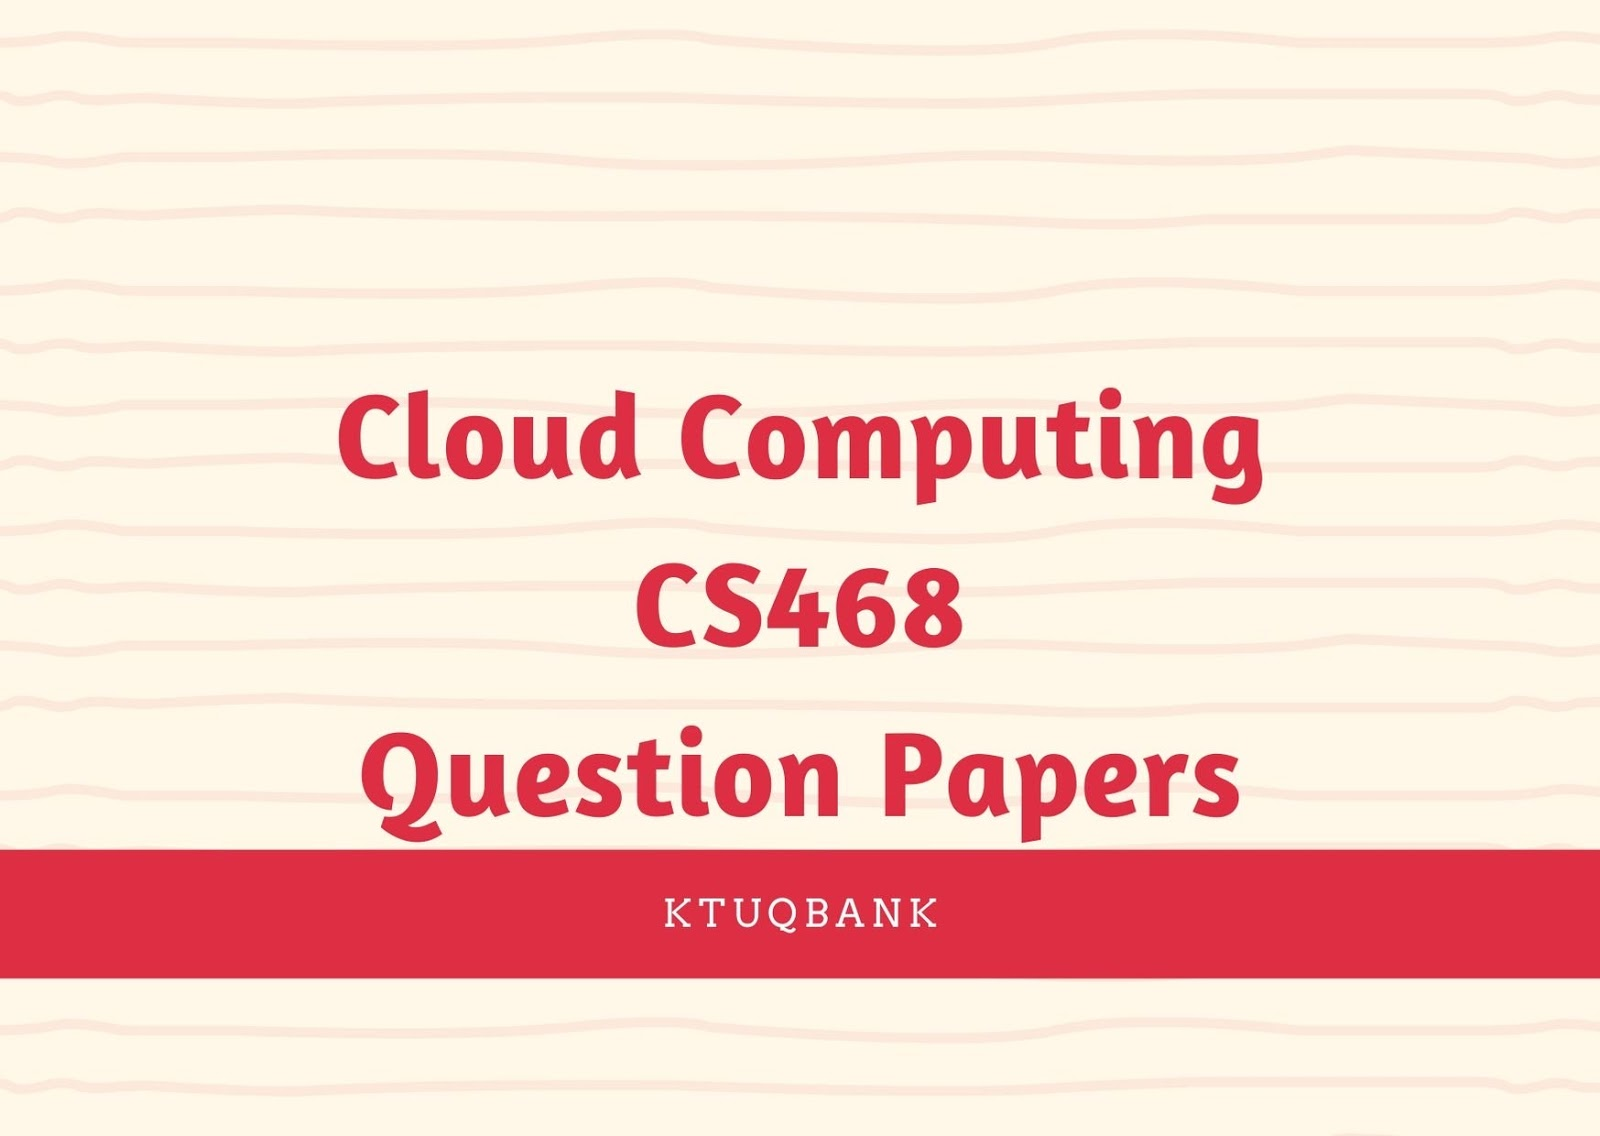 Cloud Computing | CS468 | Question Papers (2015 batch)